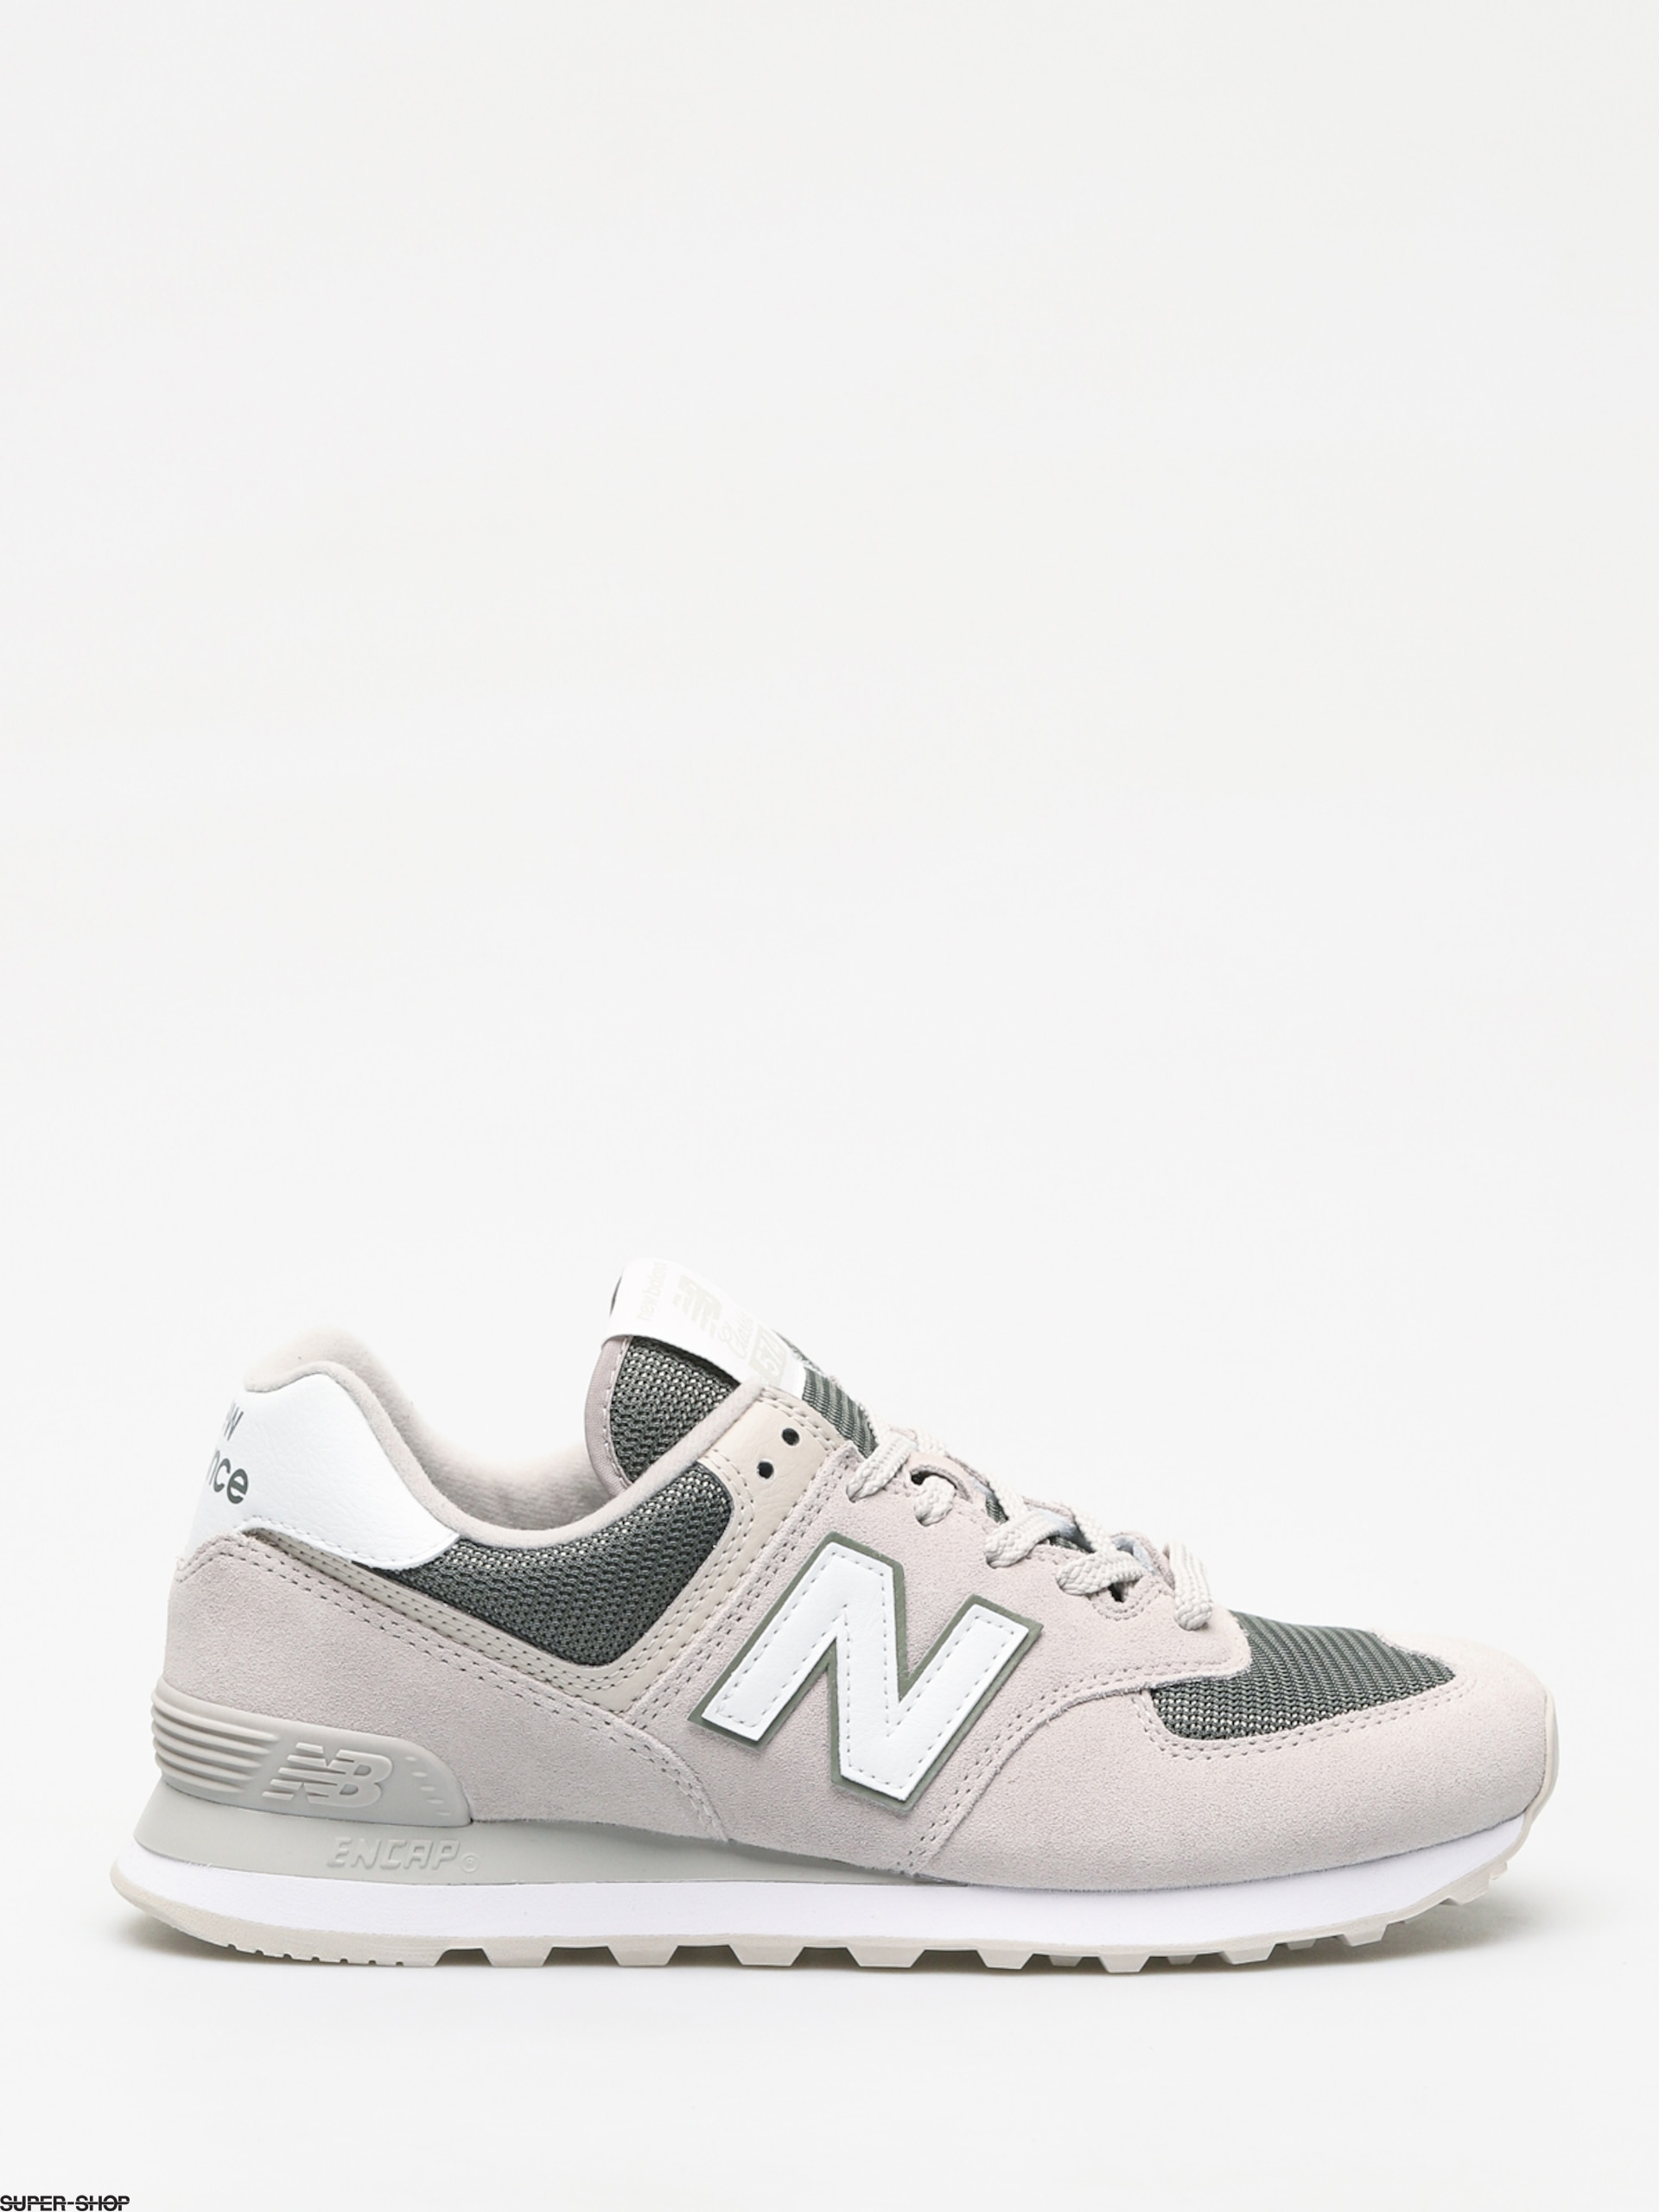 check out 2c089 3821c New Balance 574 Shoes (light cliff grey)